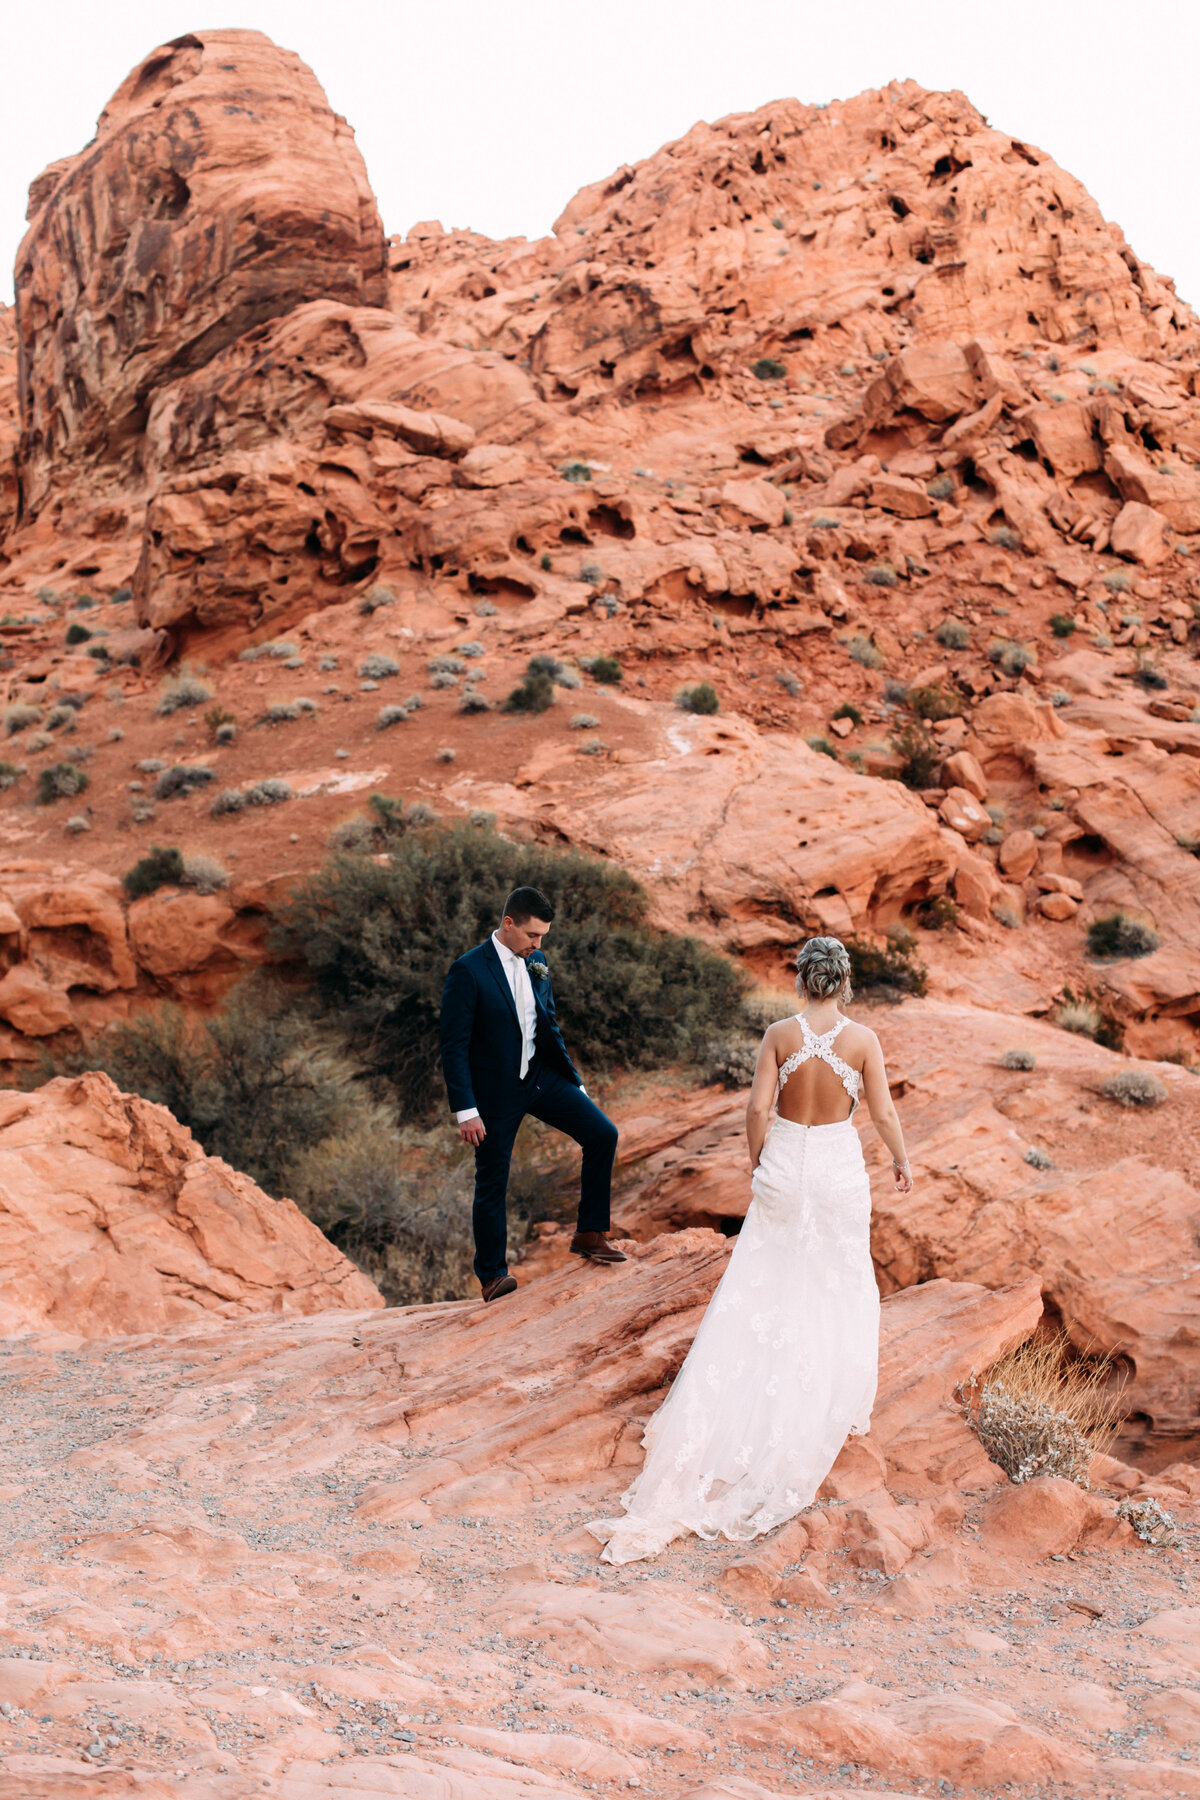 Heather+Ivan|AshlynSavannahPhoto|ValleyofFireElopement-95